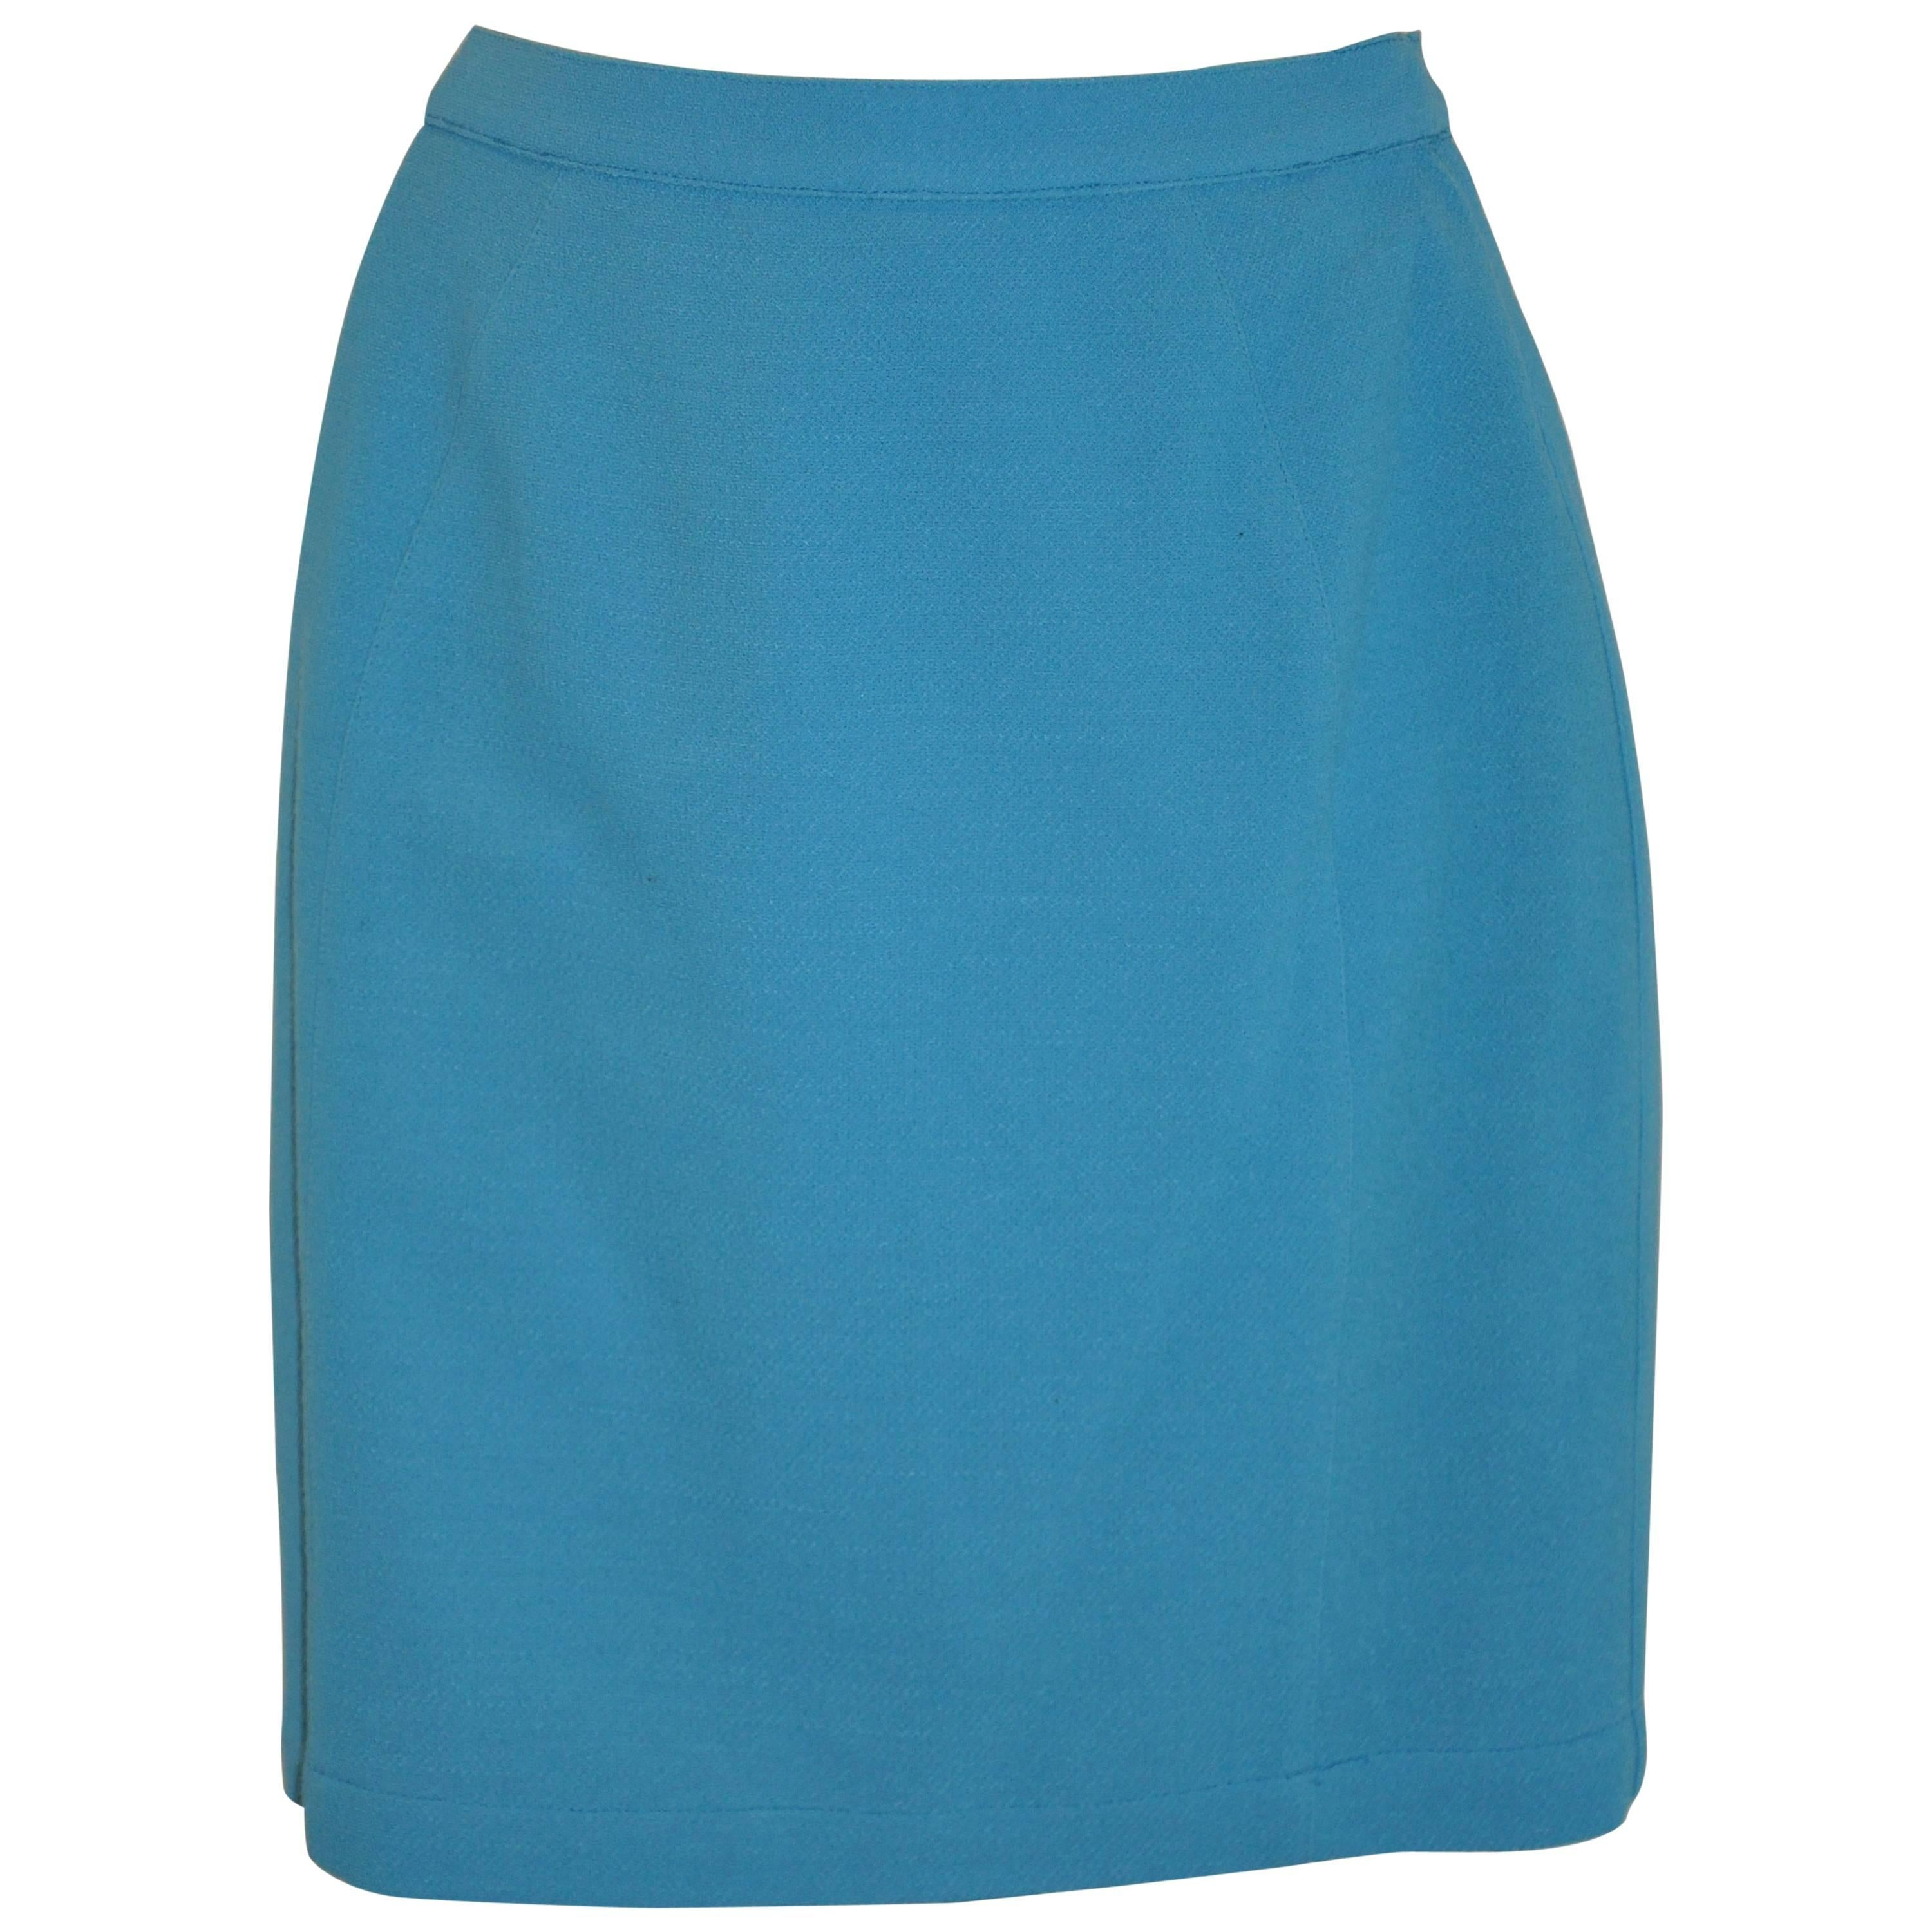 Thierry Mugler Turquoise Form-Fitting Wool Crepe Fully Lined Skirt